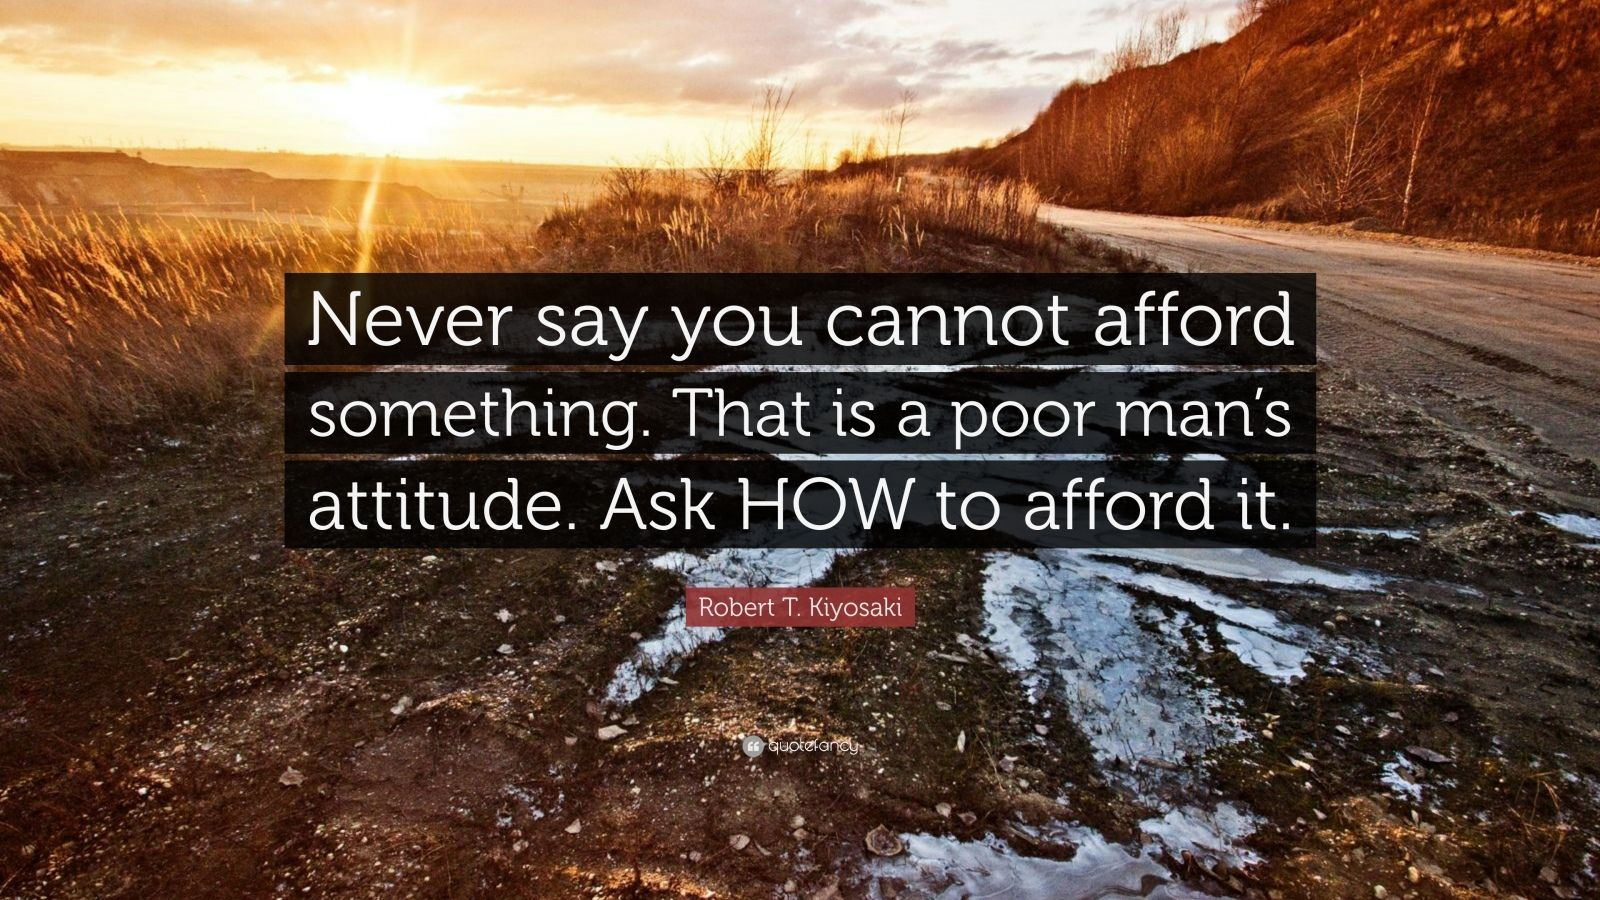 "Robert T. Kiyosaki Quote: ""Never say you cannot afford something. That is a poor man's attitude. Ask HOW to afford it."""